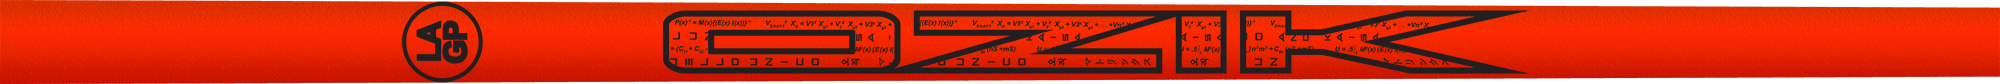 Ozik White Tie: Ferrari Red Black Textured - Wood 50 R